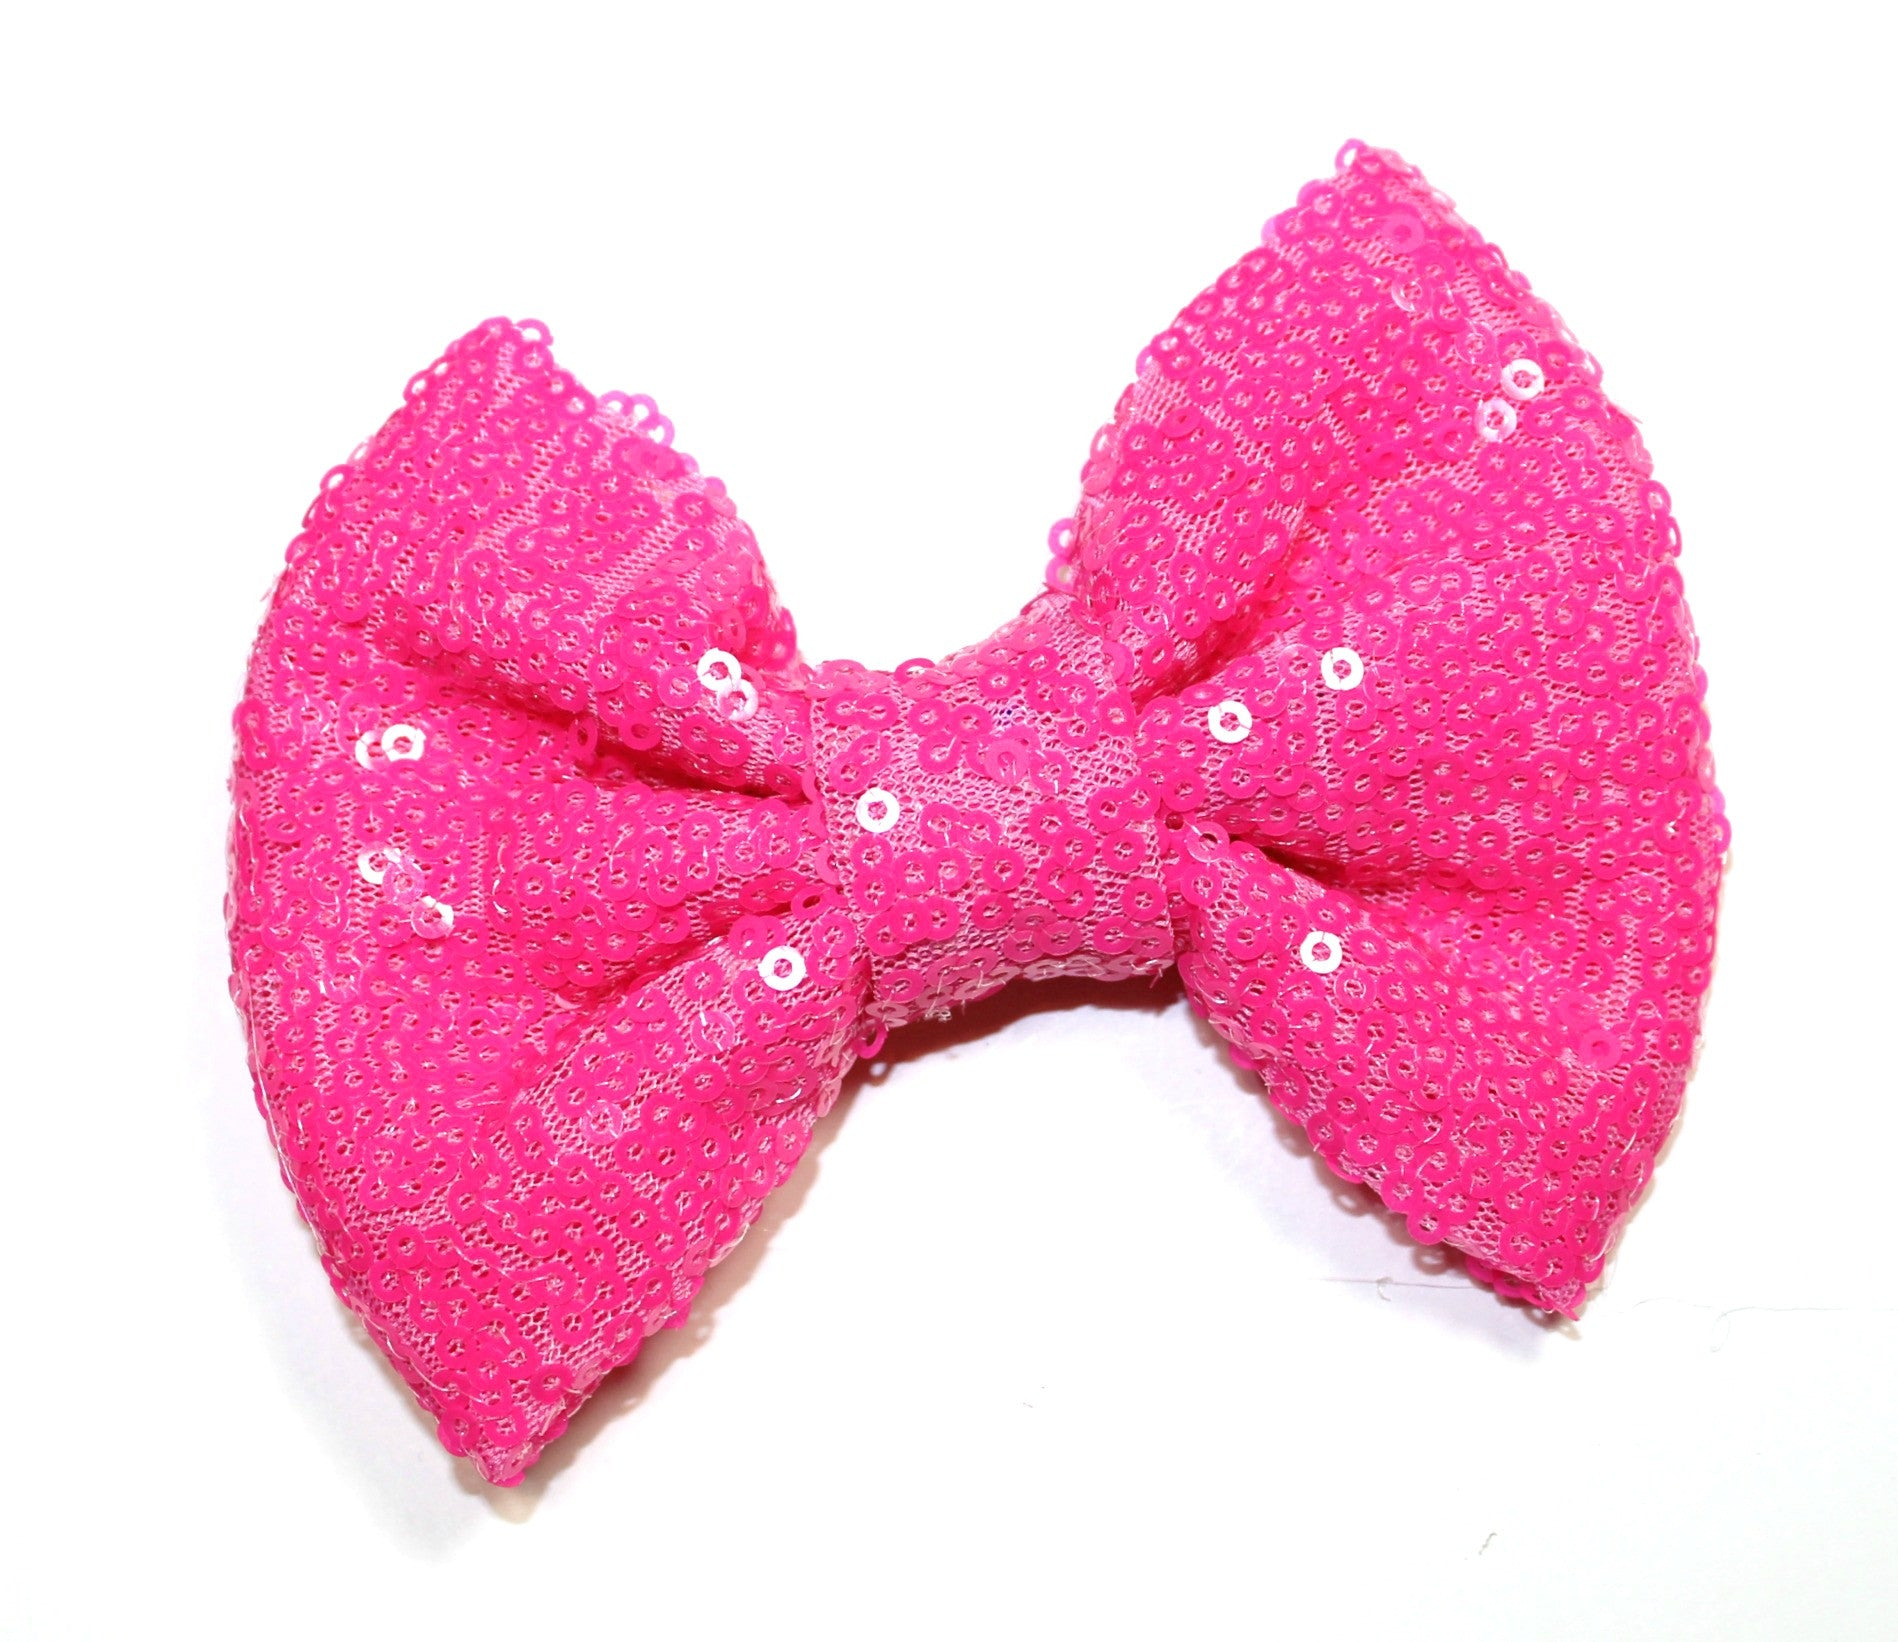 Medium Sequin Bow - Bright Pink - shabbyflowers.com